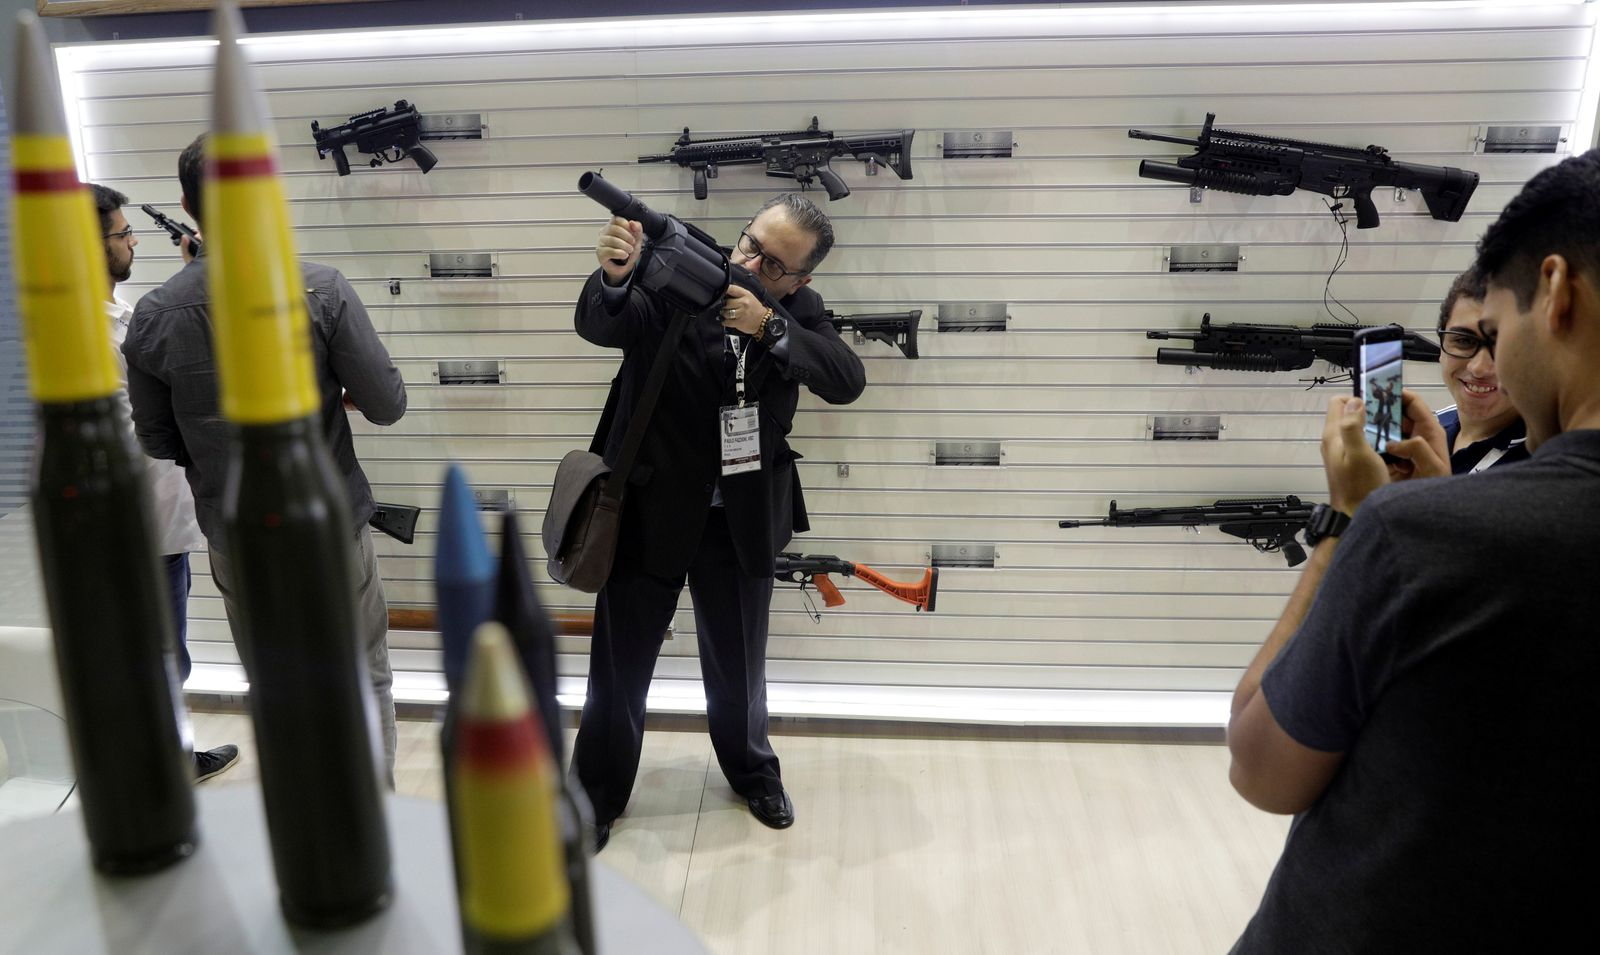 A man holds a gun during LAAD, the biggest military industry expo in Latin America in Rio de Janeiro